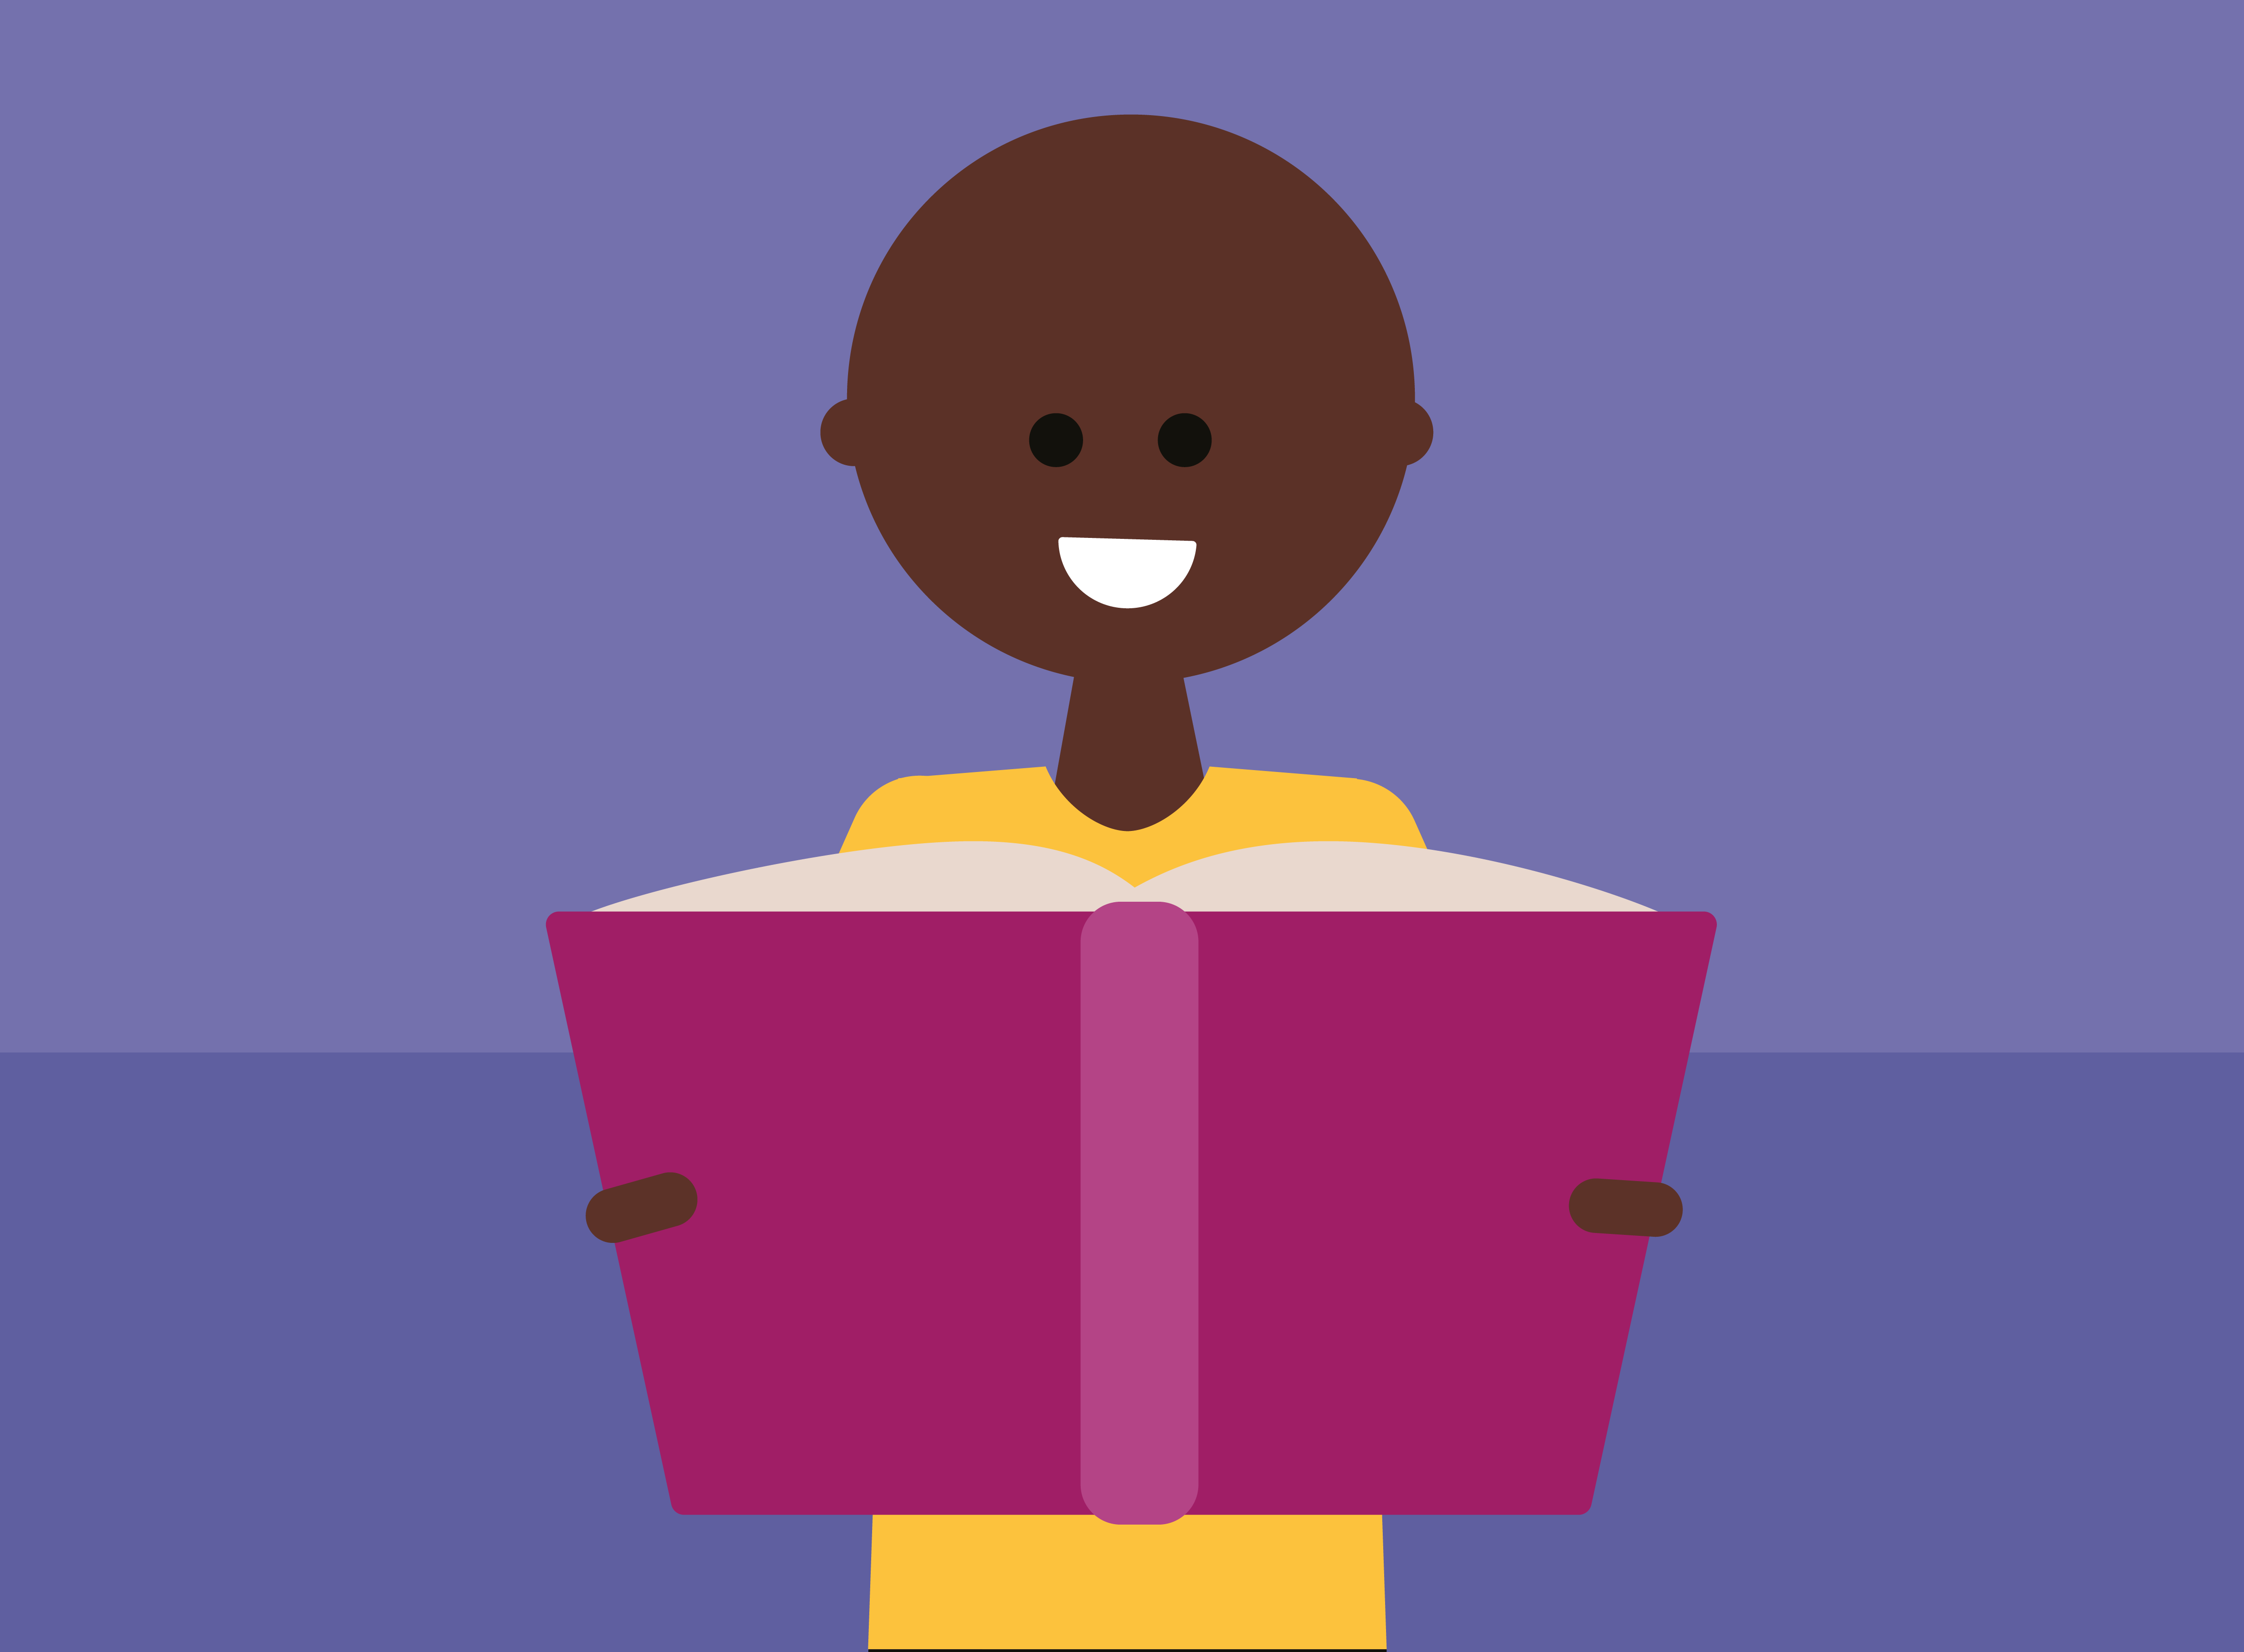 Graphic of a person reading from a large book